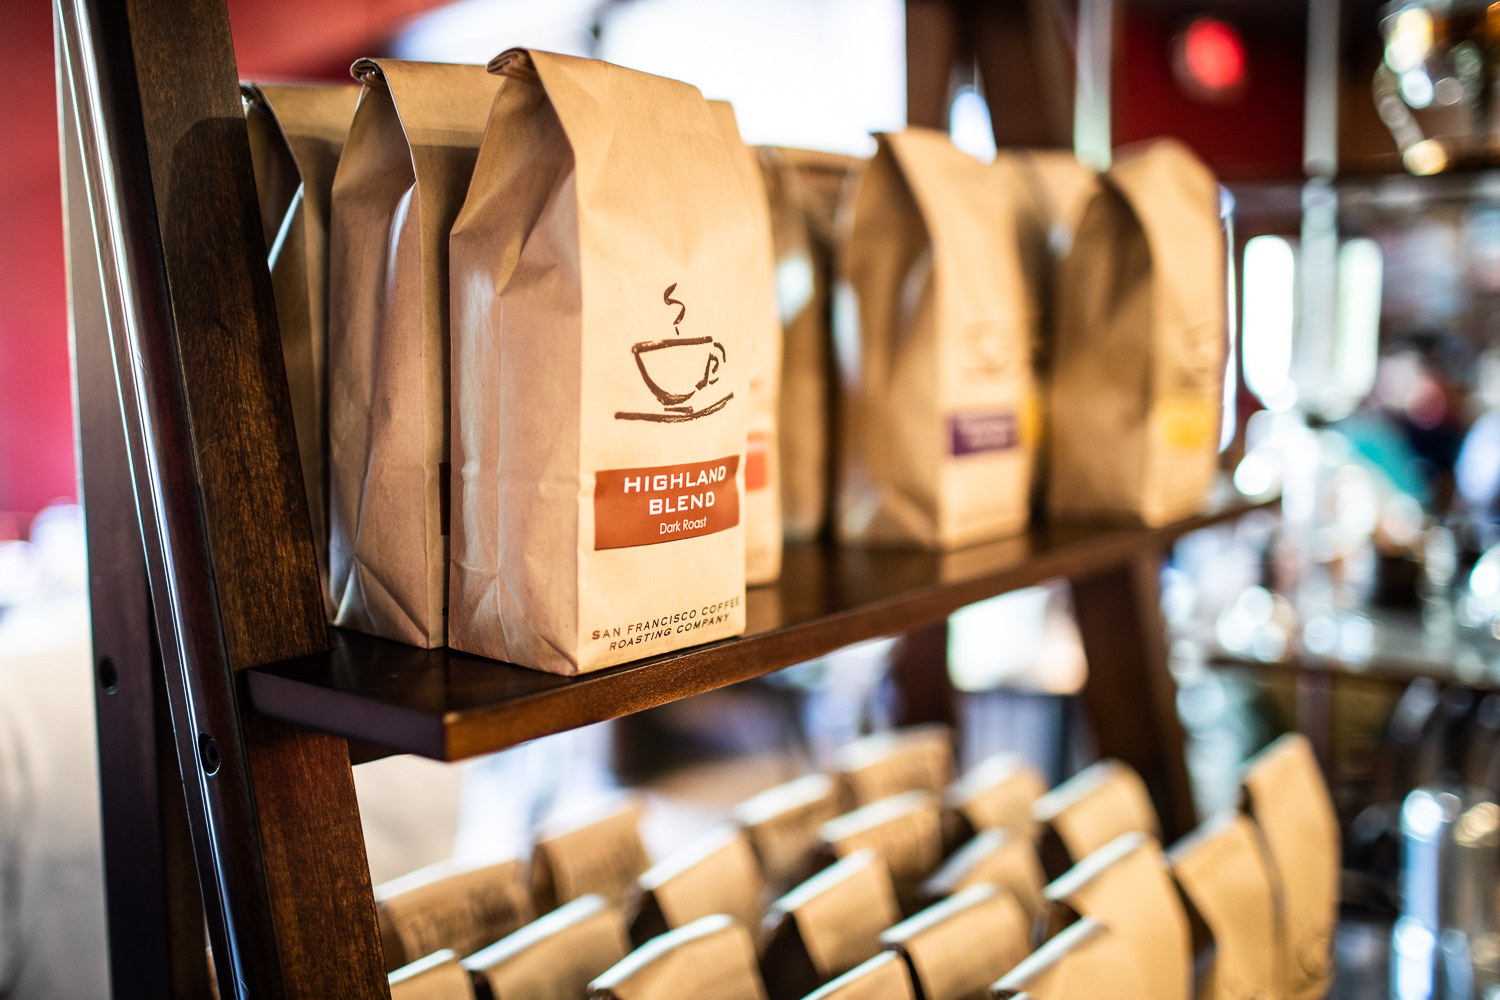 Plenty of freshly roasted coffee beans for sale at San Francisco Roasting Company.